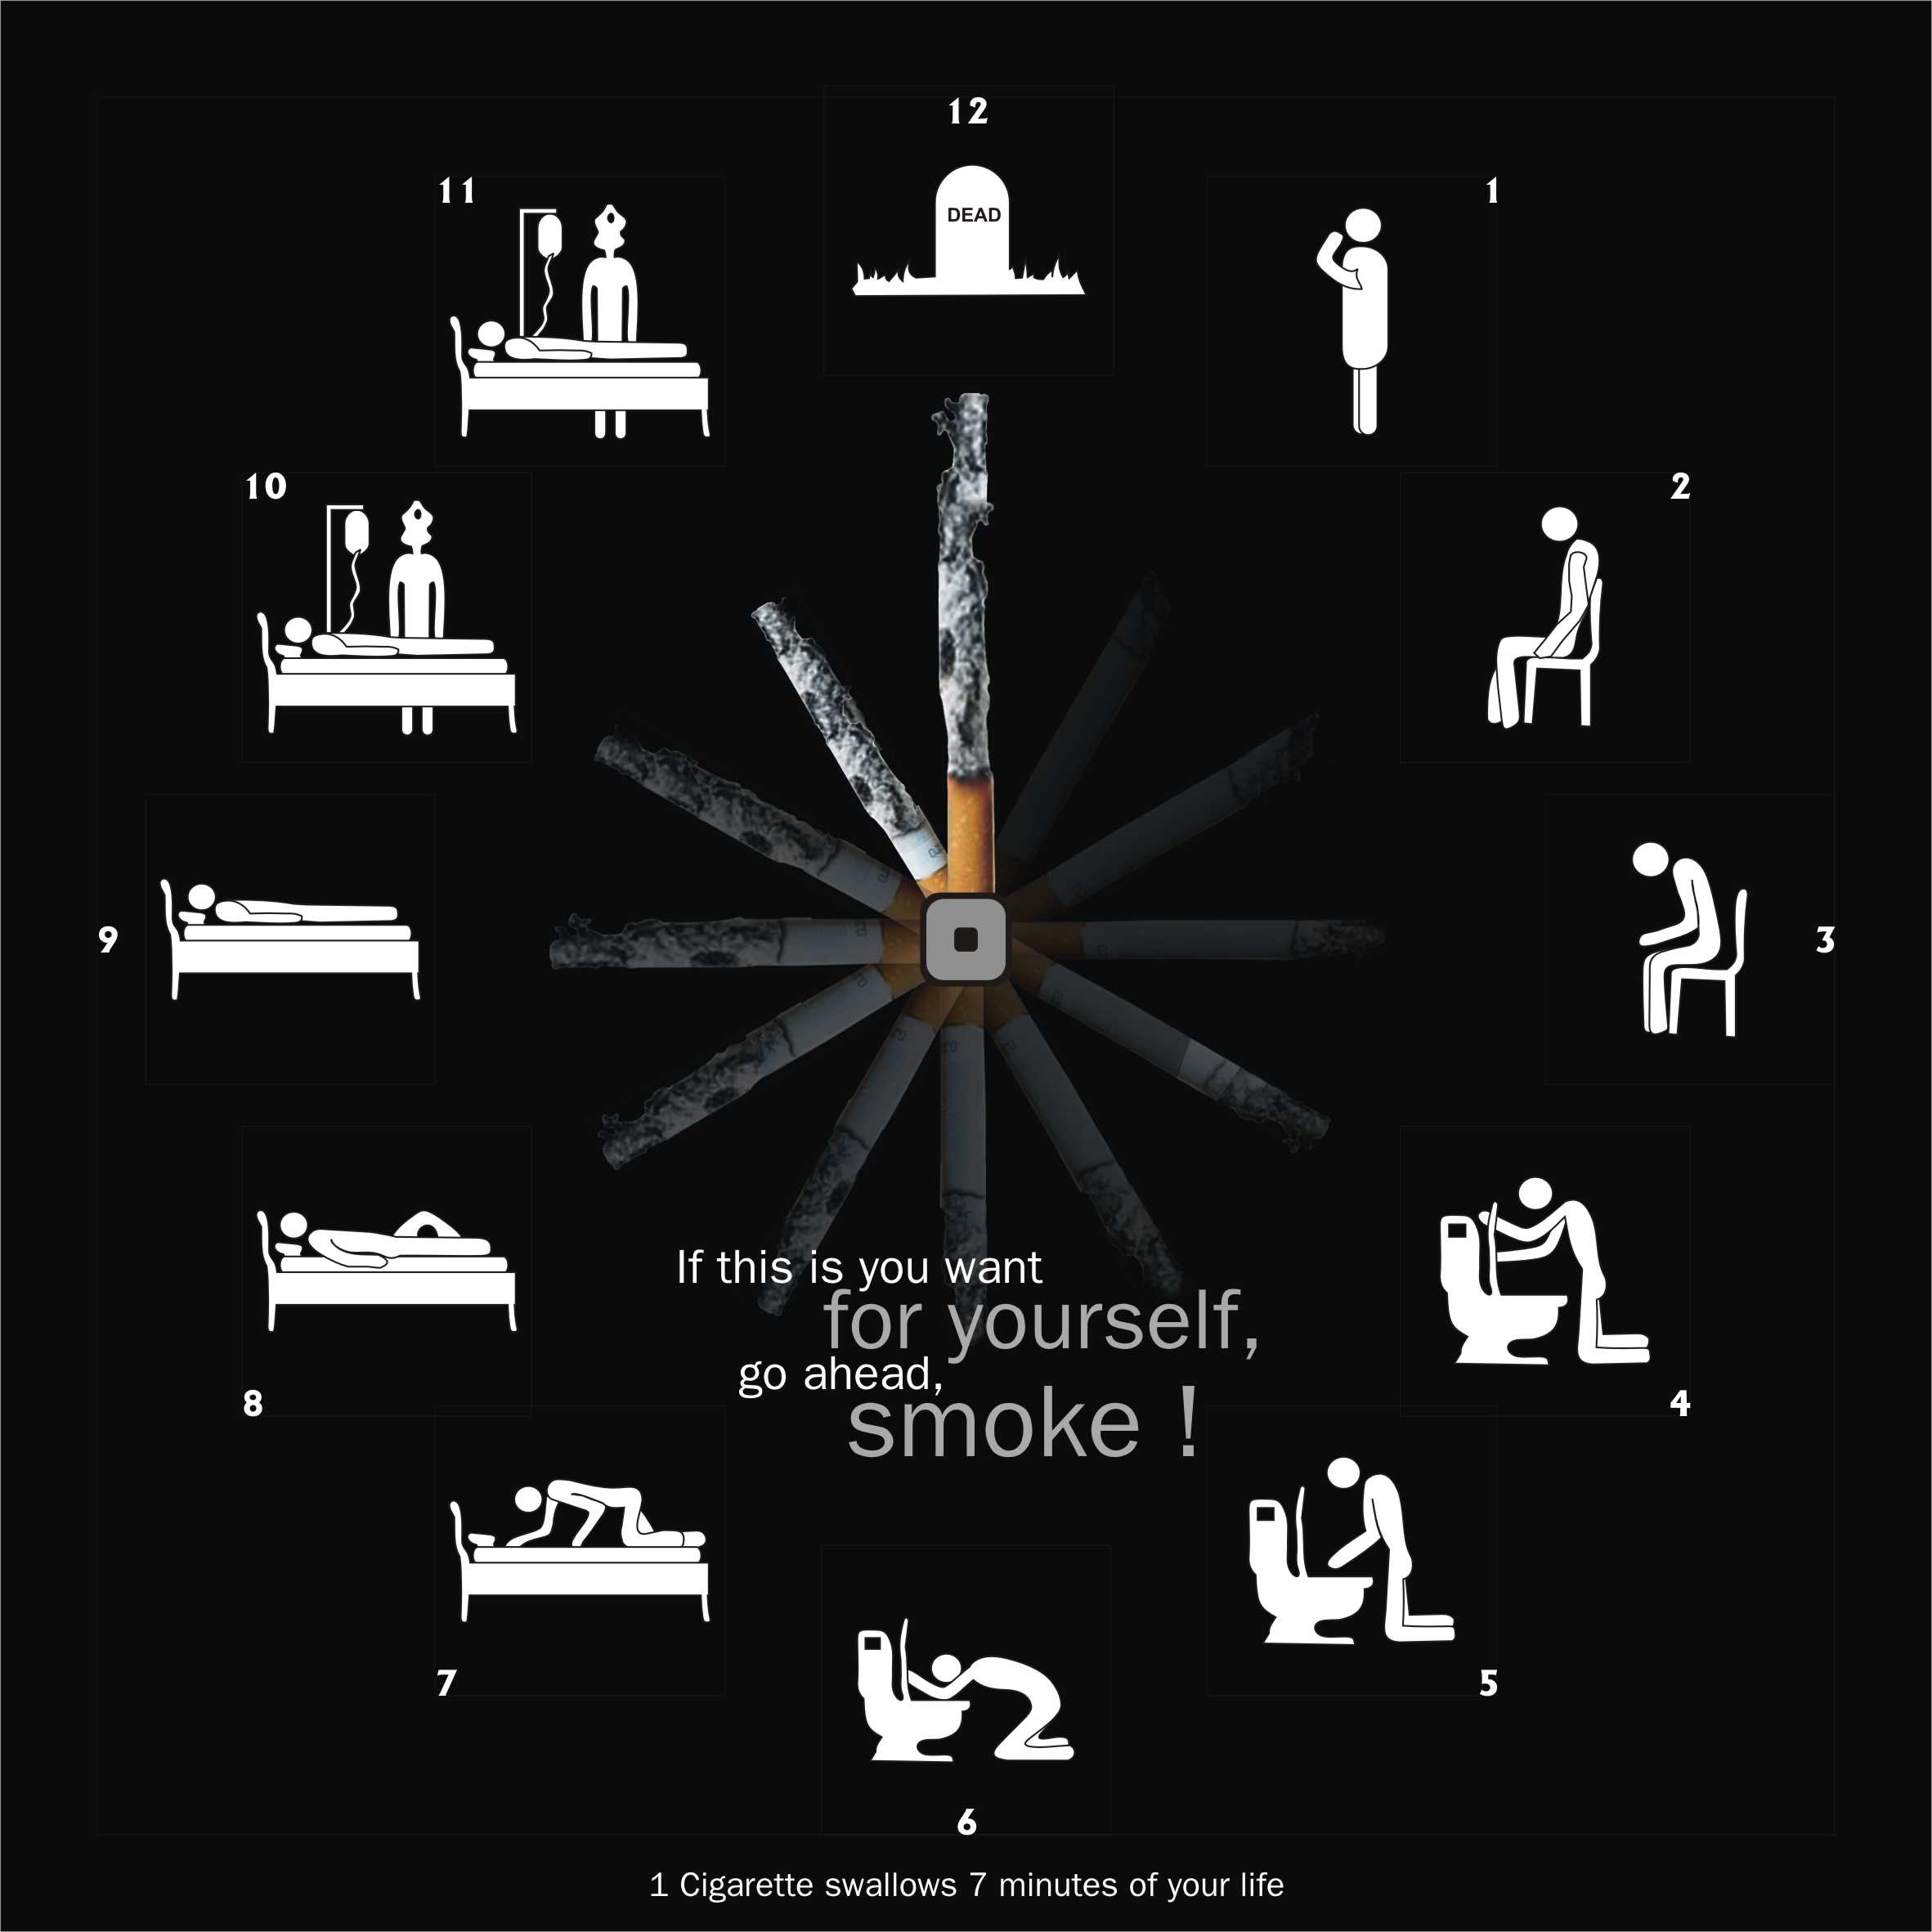 quit smoking in arabic Smoking in multicultural communities in 2013, over one quarter (28%) of australian residents were born overseas, and in 2011 19% of australians spoke a language other than english at home.